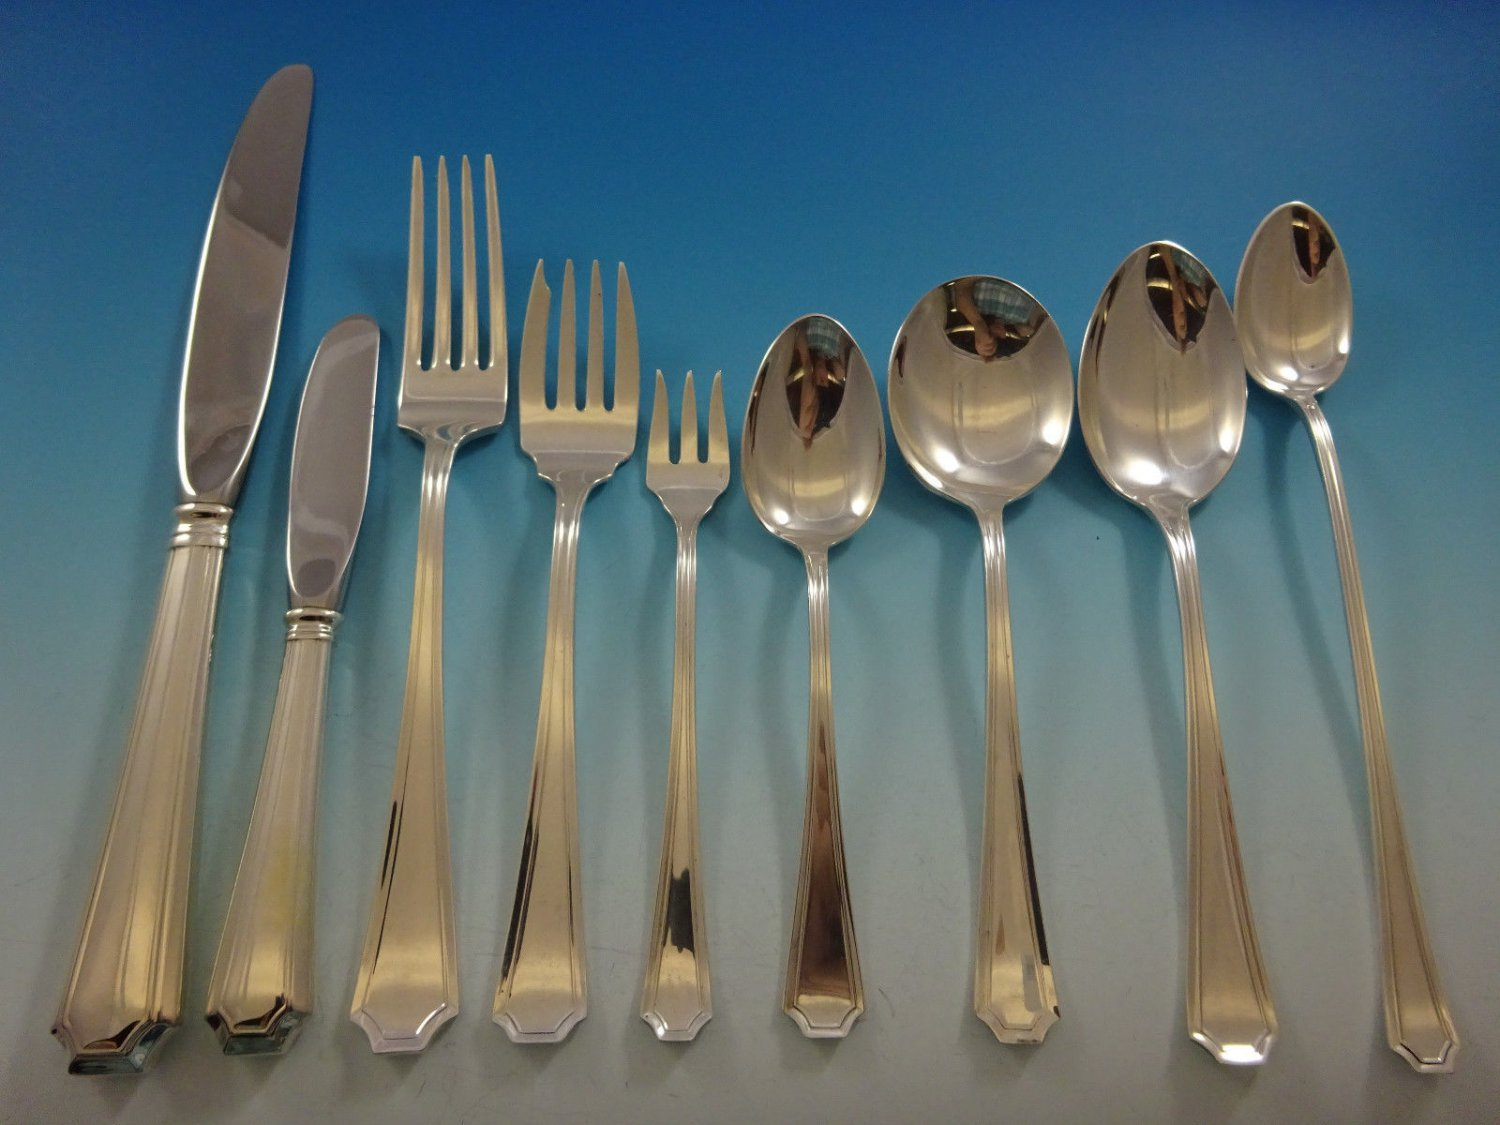 Fairfax by Gorham Sterling Silver Flatware Set For 12 Service Place Size 110 Pcs